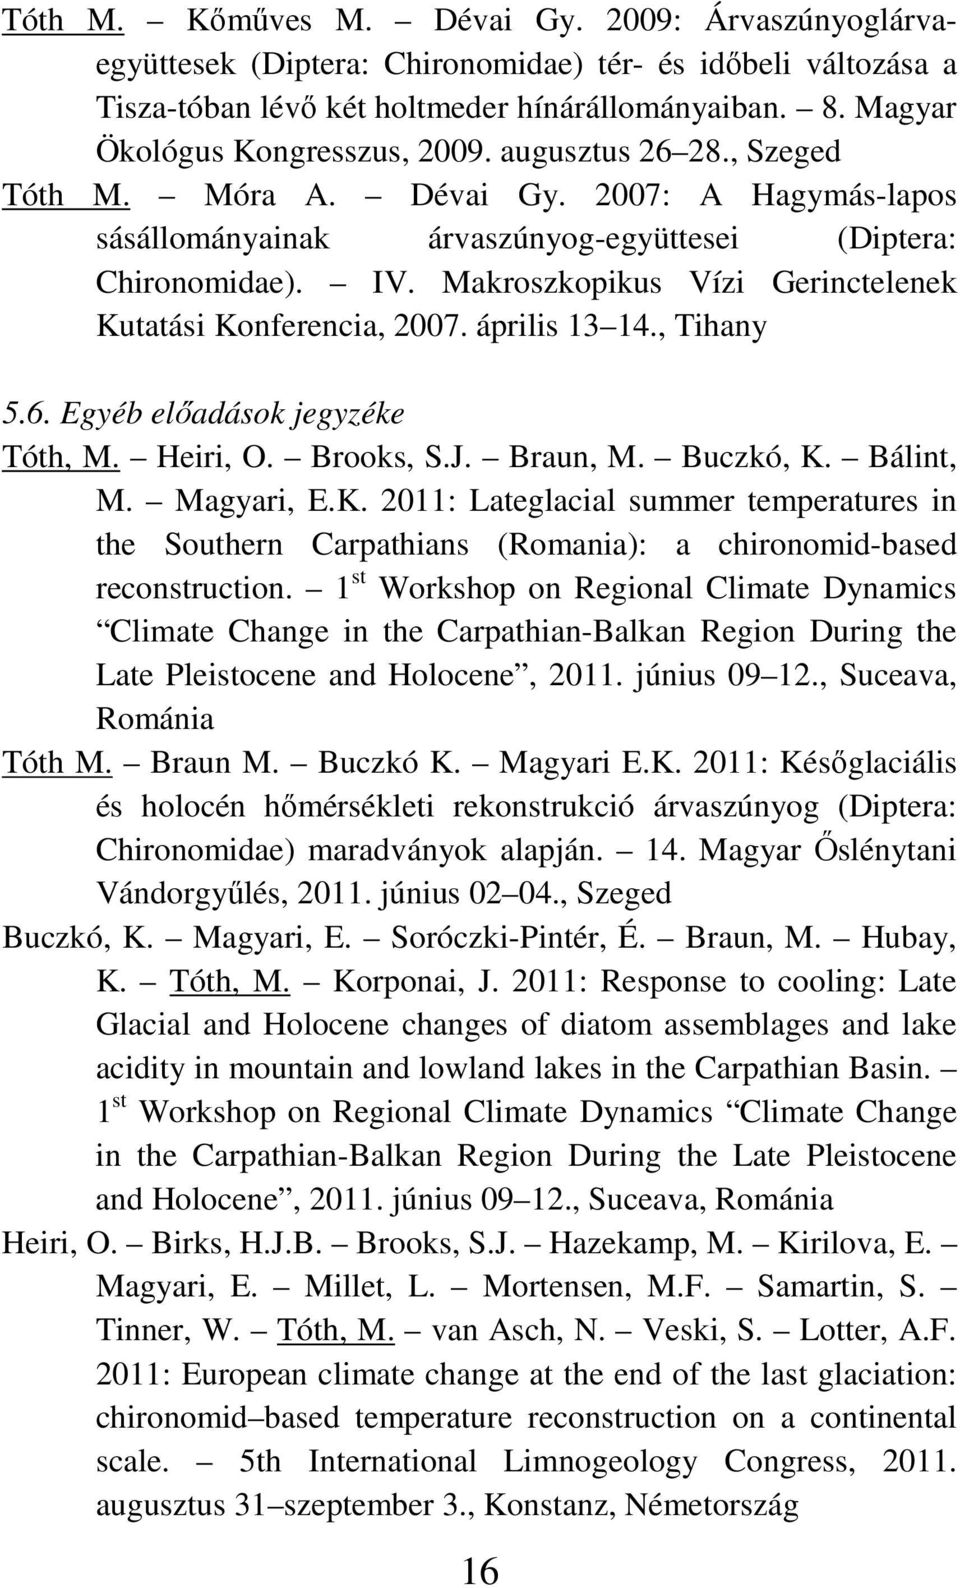 Makroszkopikus Vízi Gerinctelenek Kutatási Konferencia, 2007. április 13 14., Tihany 5.6. Egyéb elıadások jegyzéke Tóth, M. Heiri, O. Brooks, S.J. Braun, M. Buczkó, K. Bálint, M. Magyari, E.K. 2011: Lateglacial summer temperatures in the Southern Carpathians (Romania): a chironomid-based reconstruction.